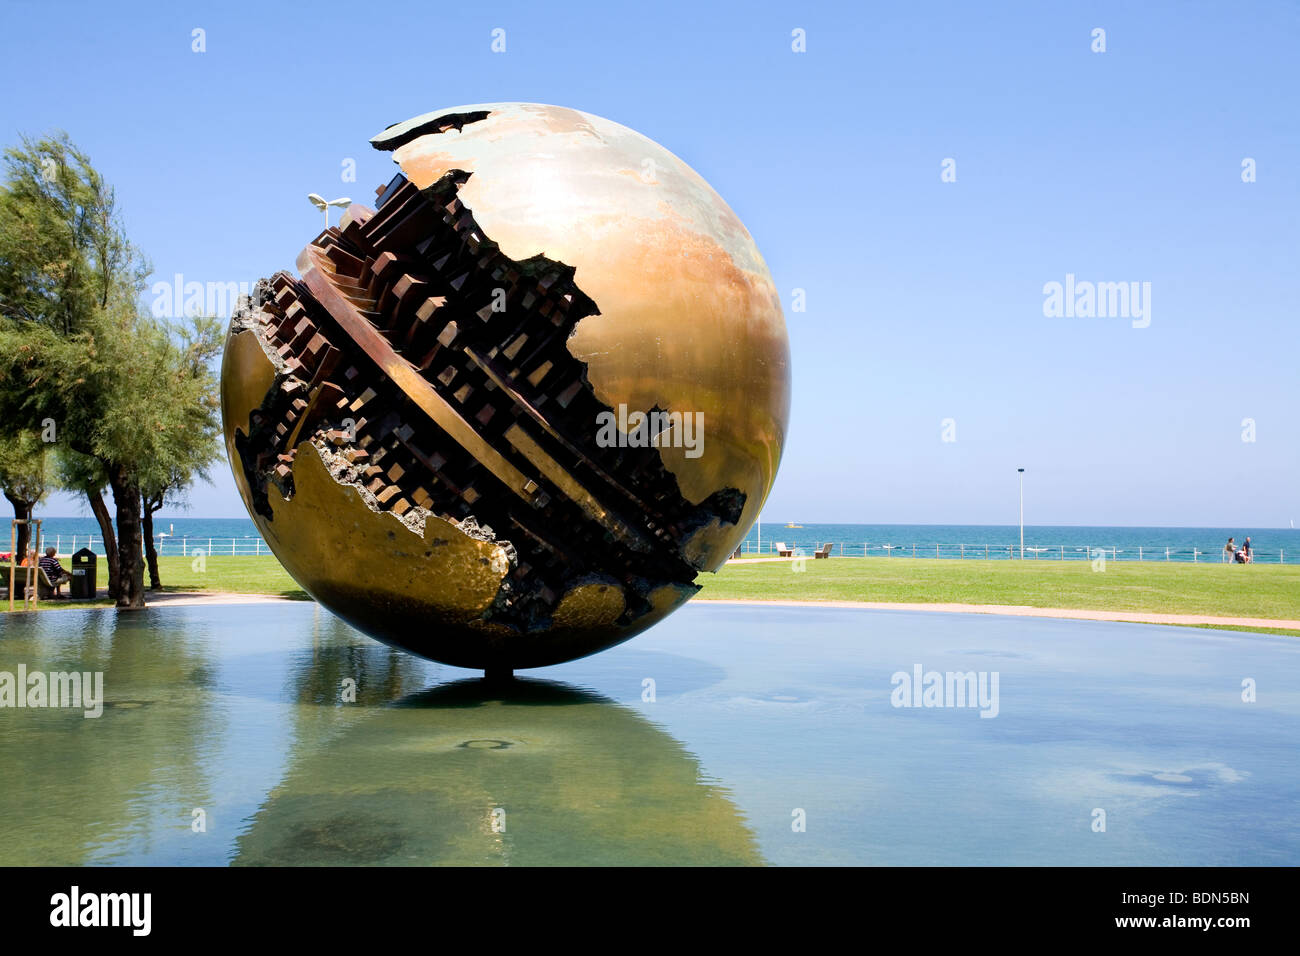 A Sculpture of a Sphere representing the World by Arnaldo Pomodoro in a fountain at the Piazzale della Liberta in - Stock Image